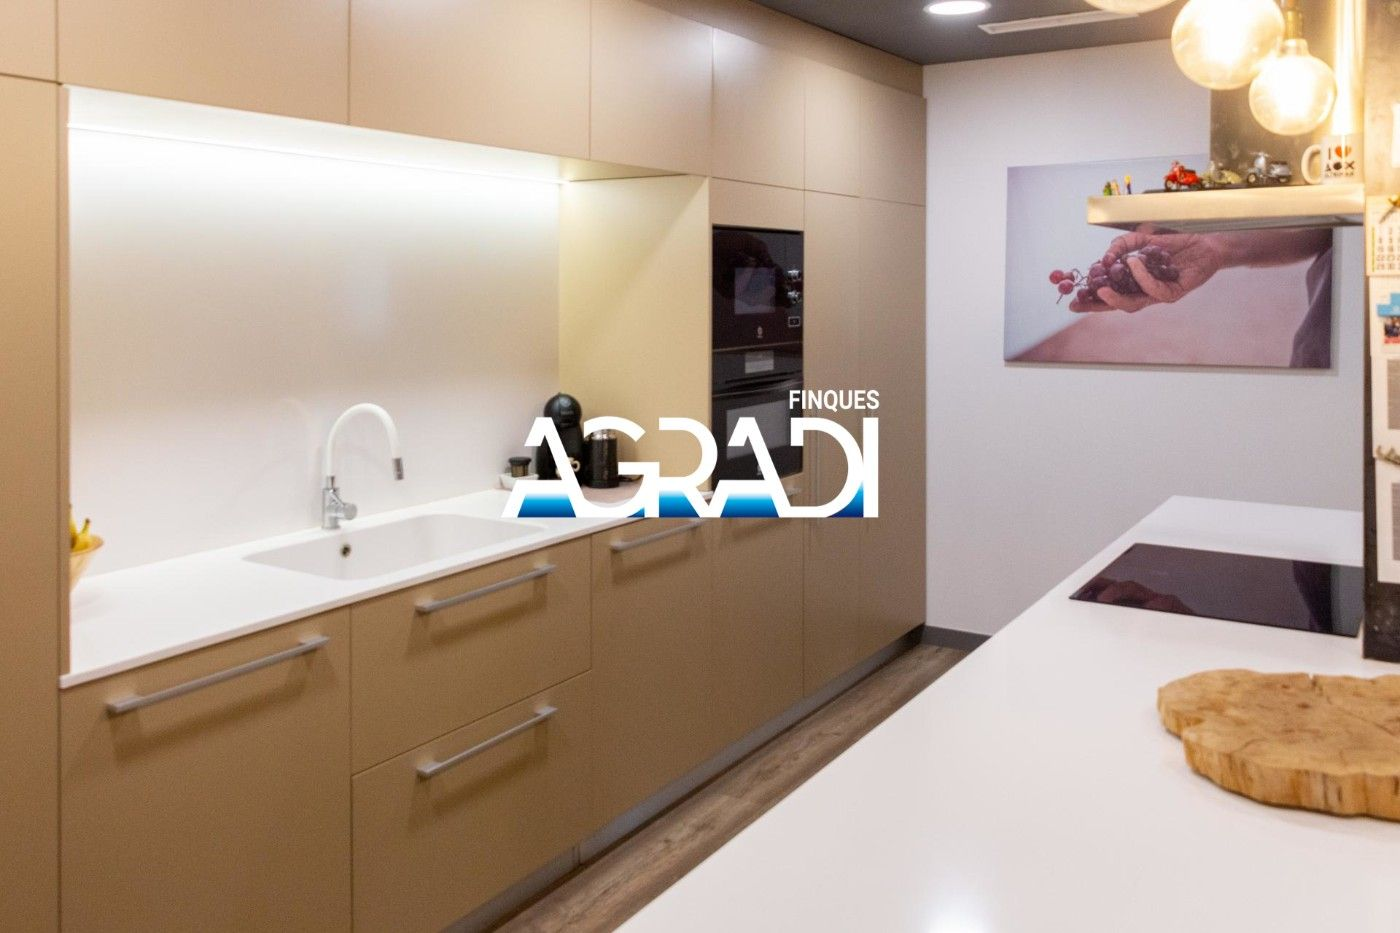 Ground floor  Carrer arcadi viñas. Planta baja reformada exclusiva